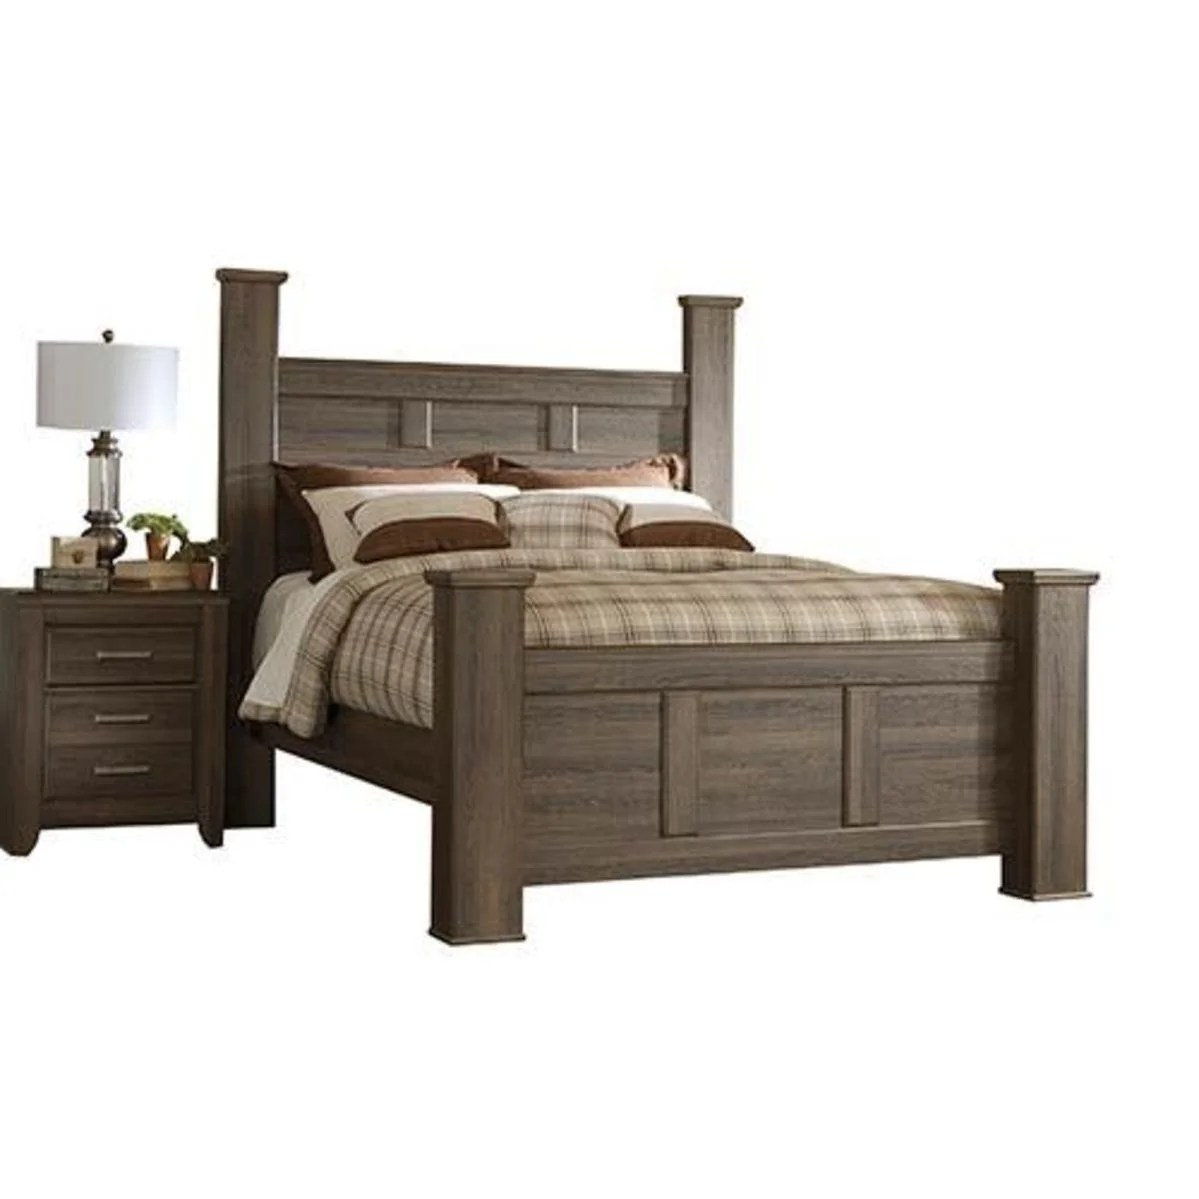 Furniture Stores Near Me With Layaway Bedrooms